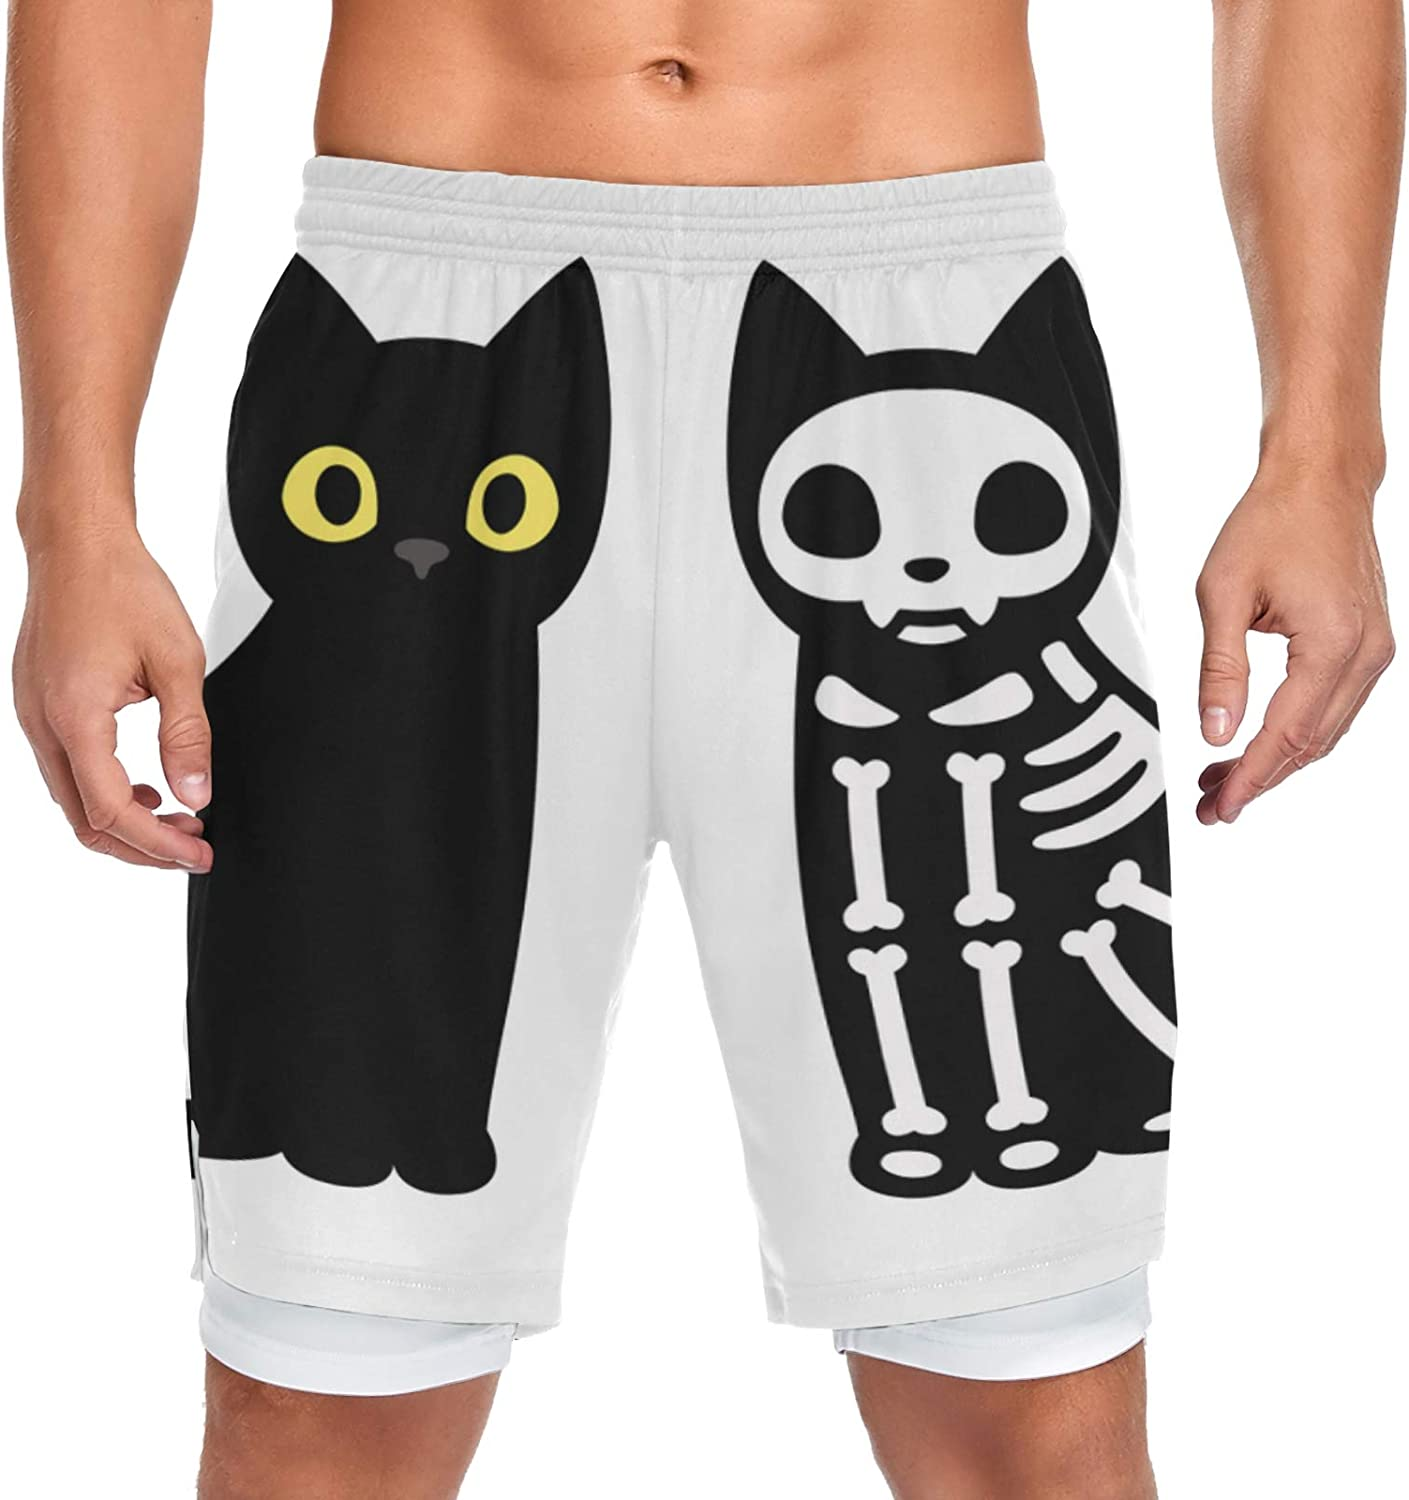 Running 2021 autumn and winter new Shorts Black Cat Drawing Men SkeletCute OFFicial mail order Sport Training W